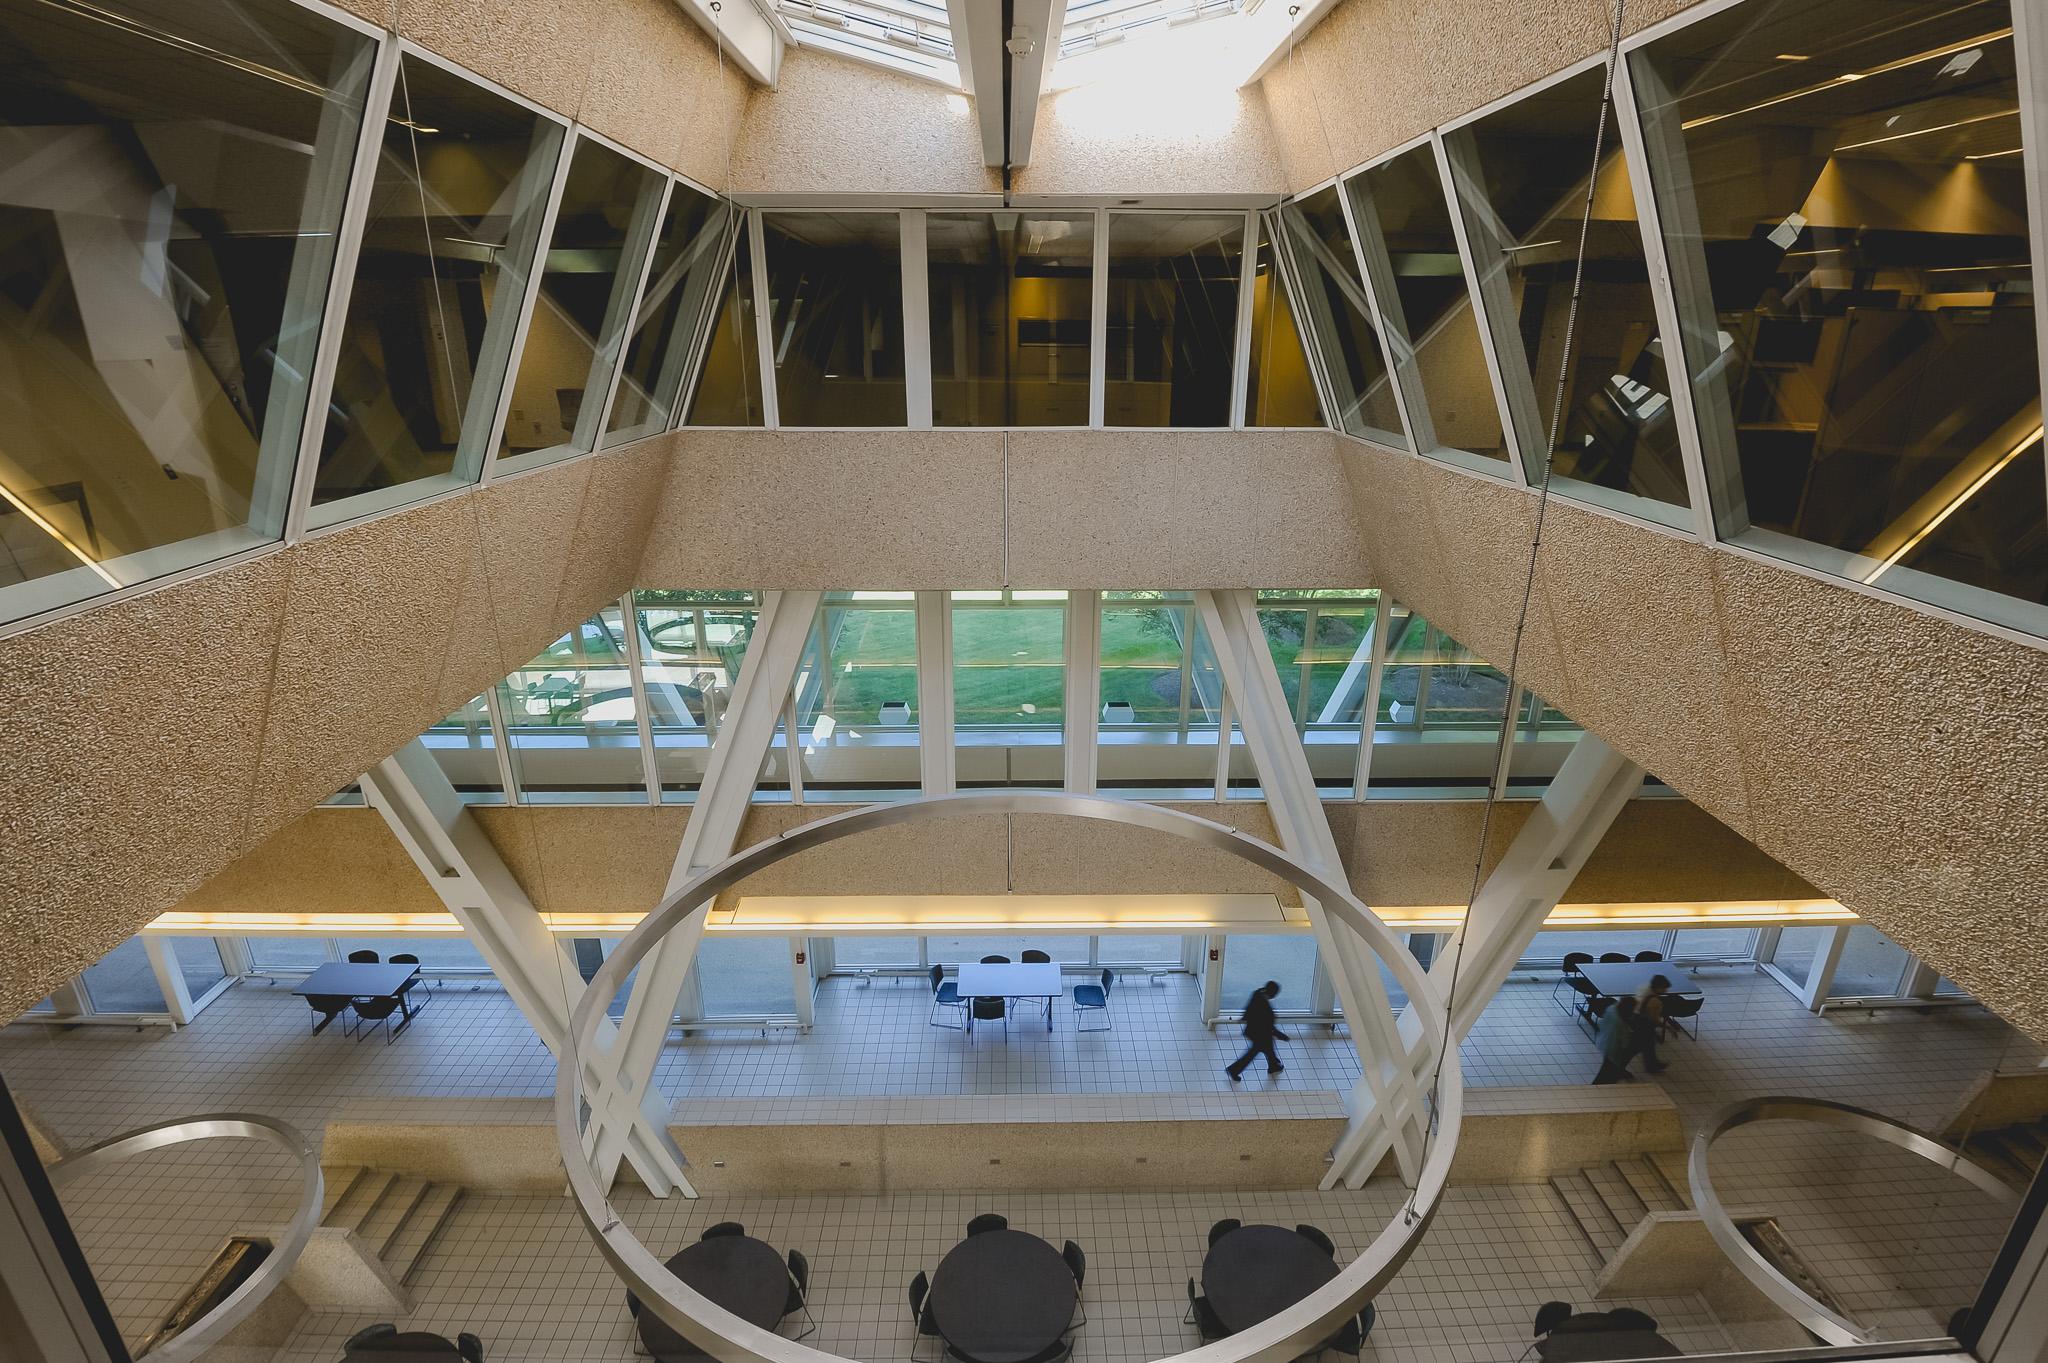 interior of modernist office building, the Burroughs Wellcome Company hq